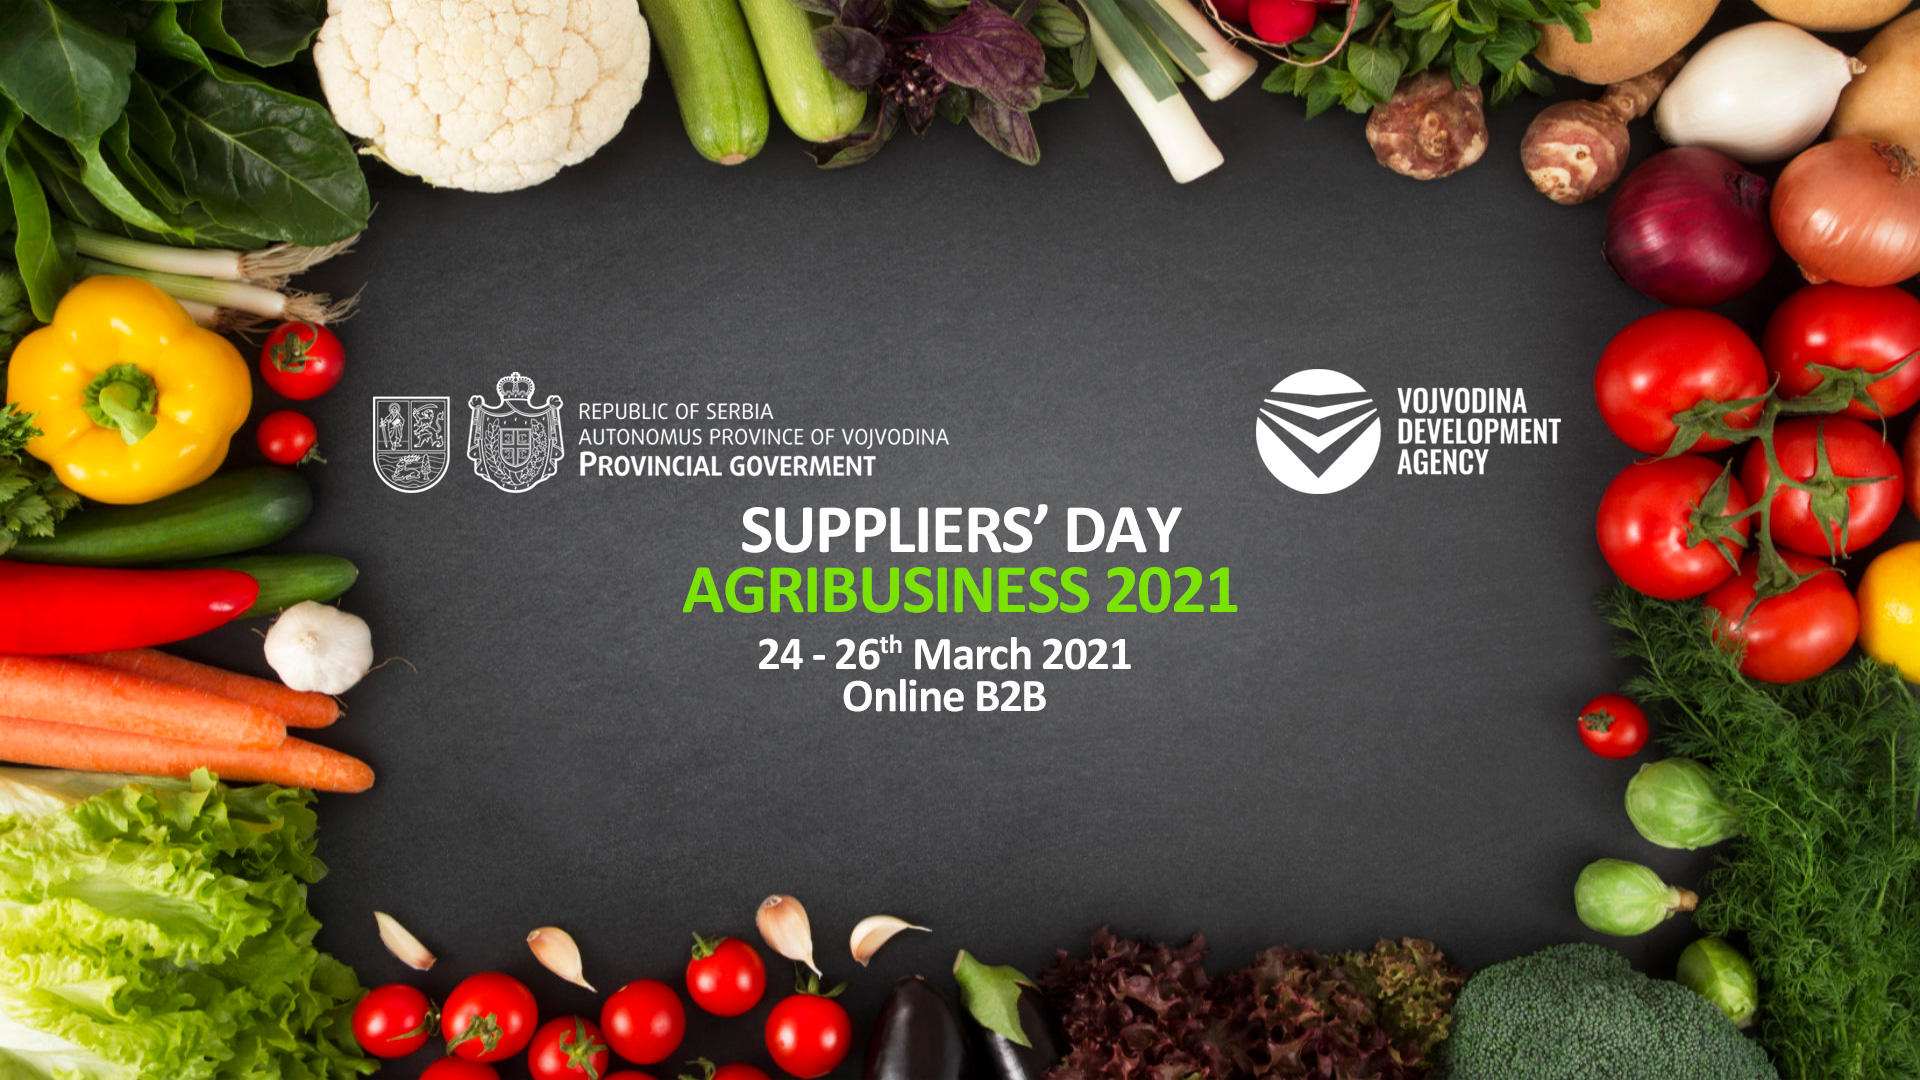 Suppliers' Day – Agribusiness 2021, part 2